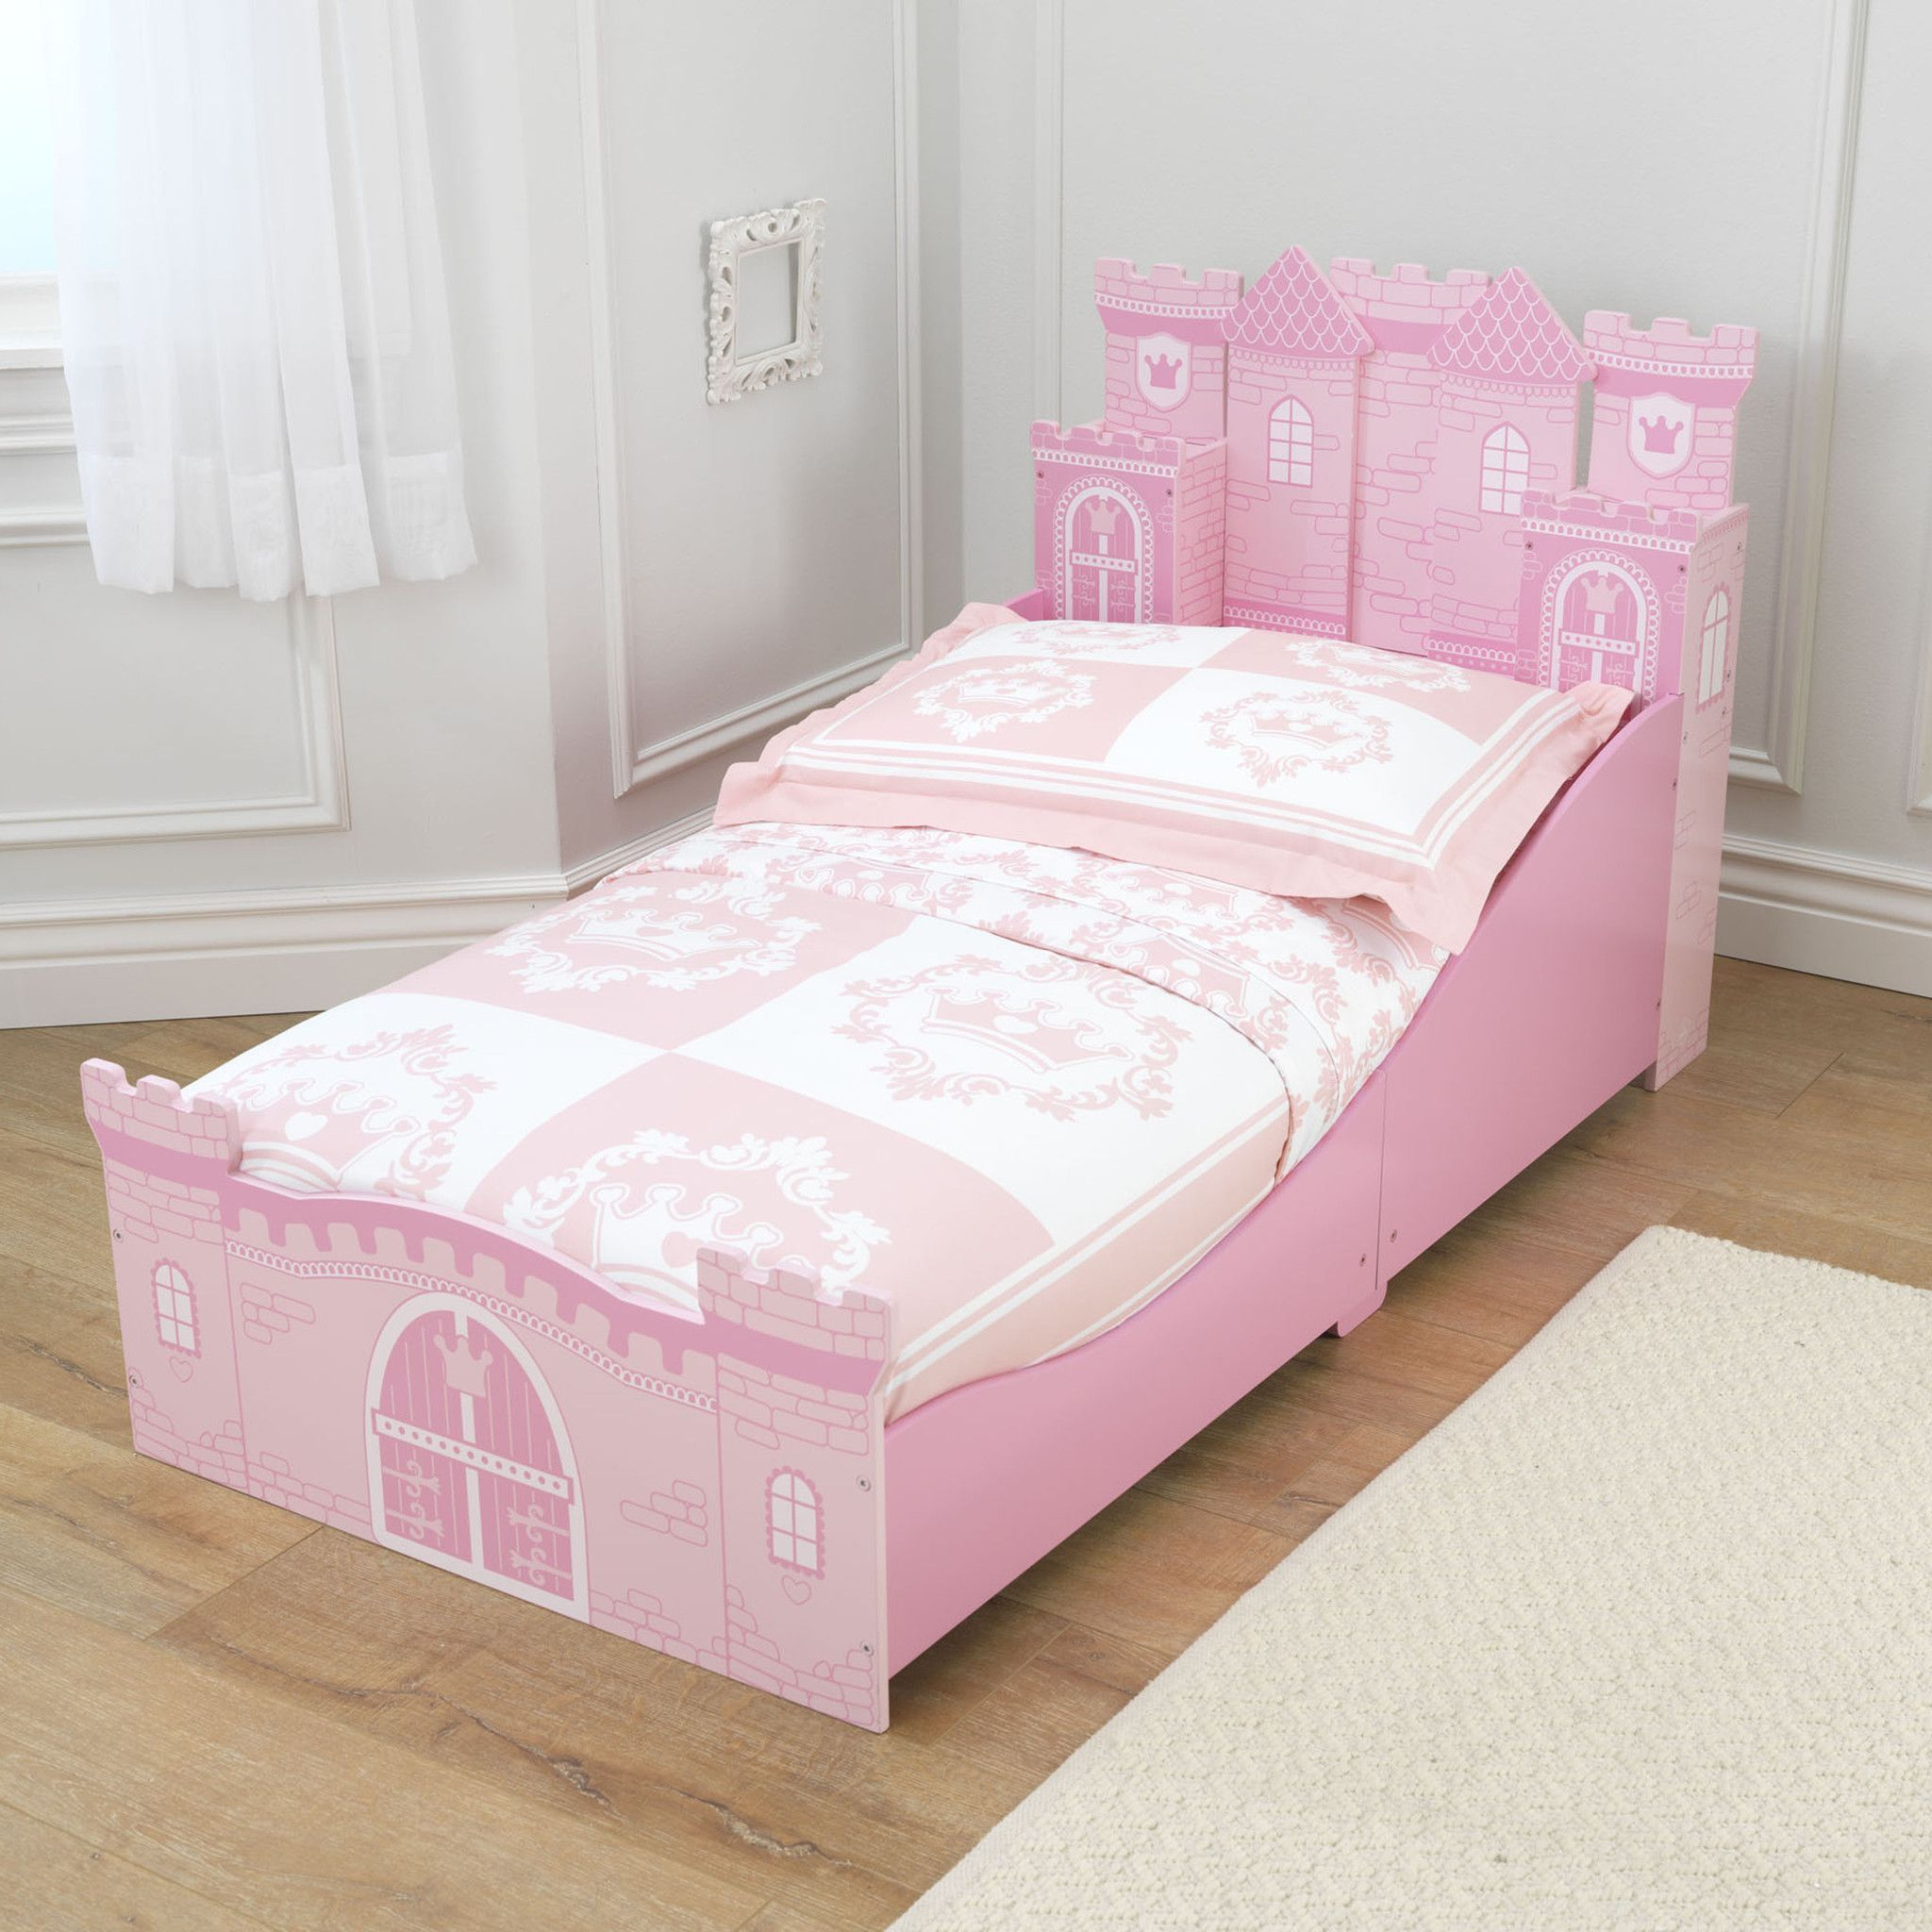 Bedroom furniture for girls castle - Kid Kraft Princess Castle Toddler Bed 76260